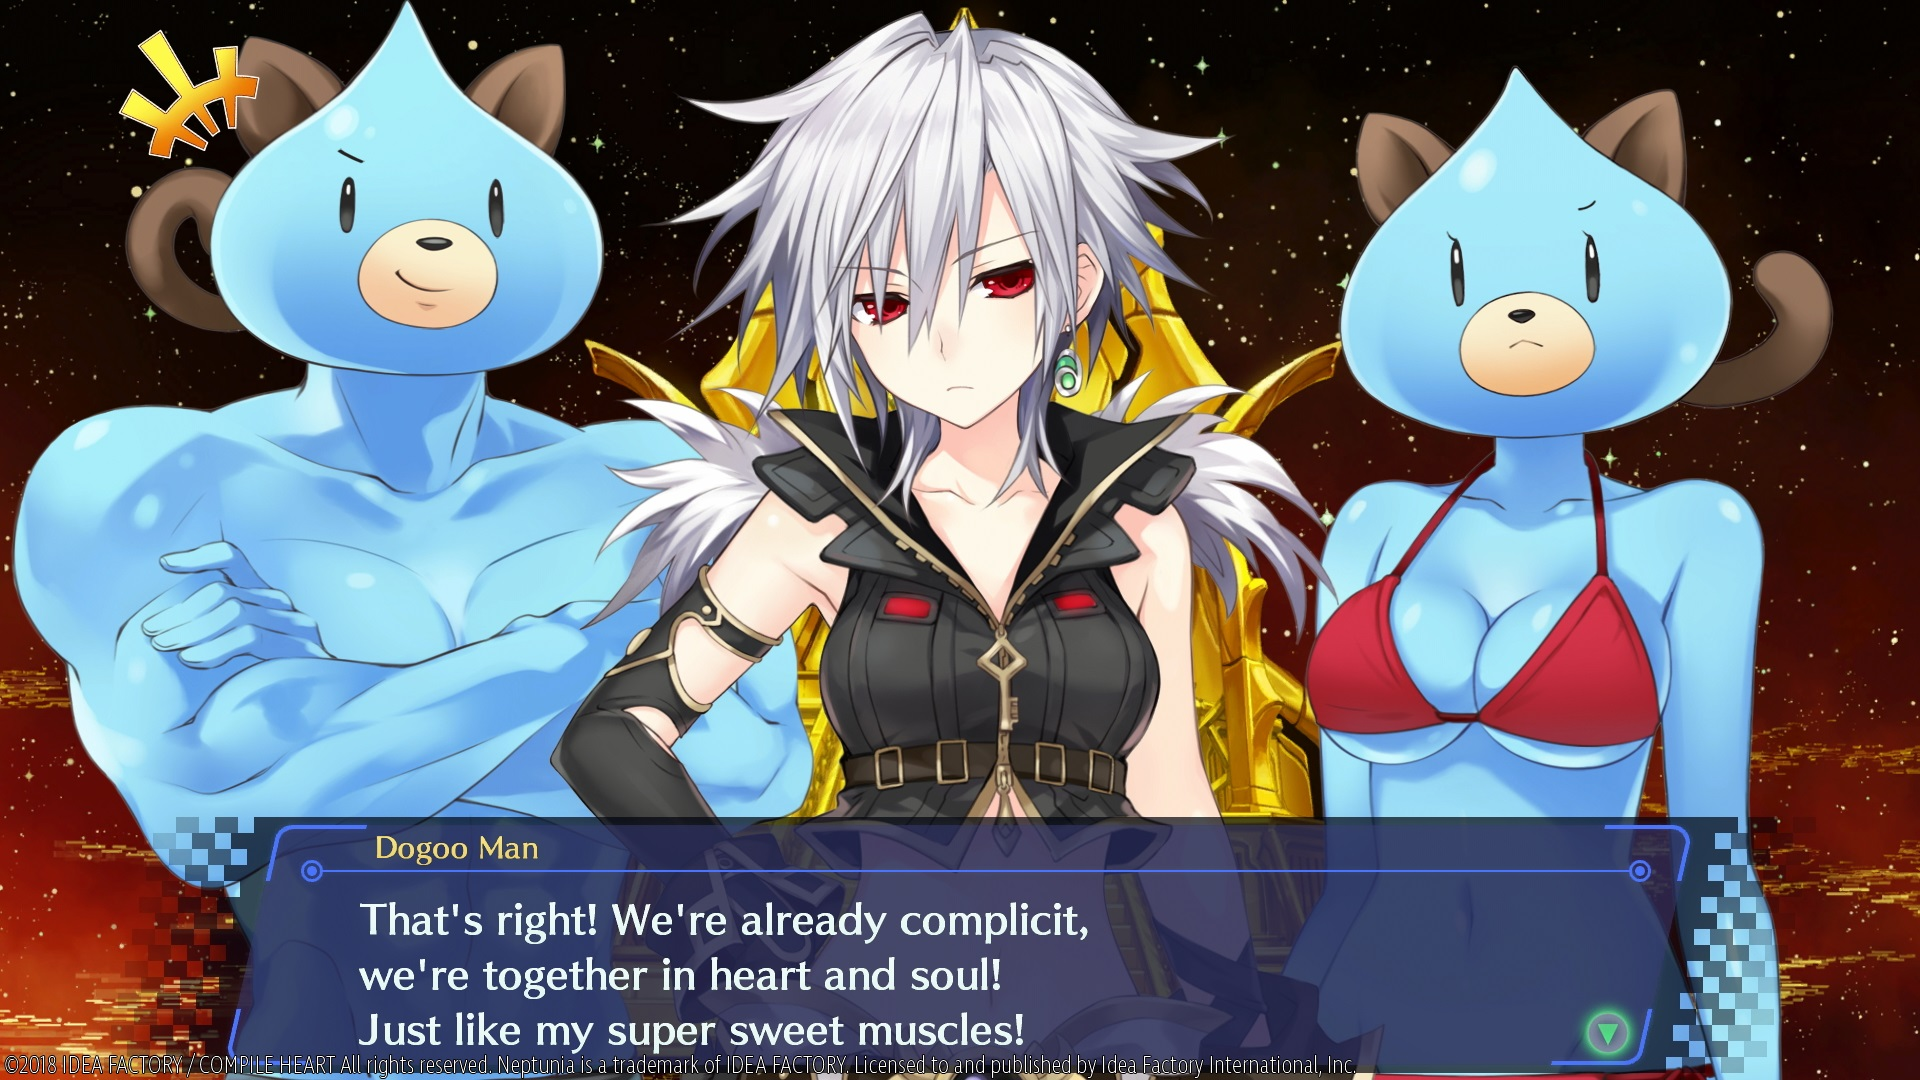 Megadimension Neptunia VIIR Event Scenes Highlighted In Latest Screenshots Capsule Computers